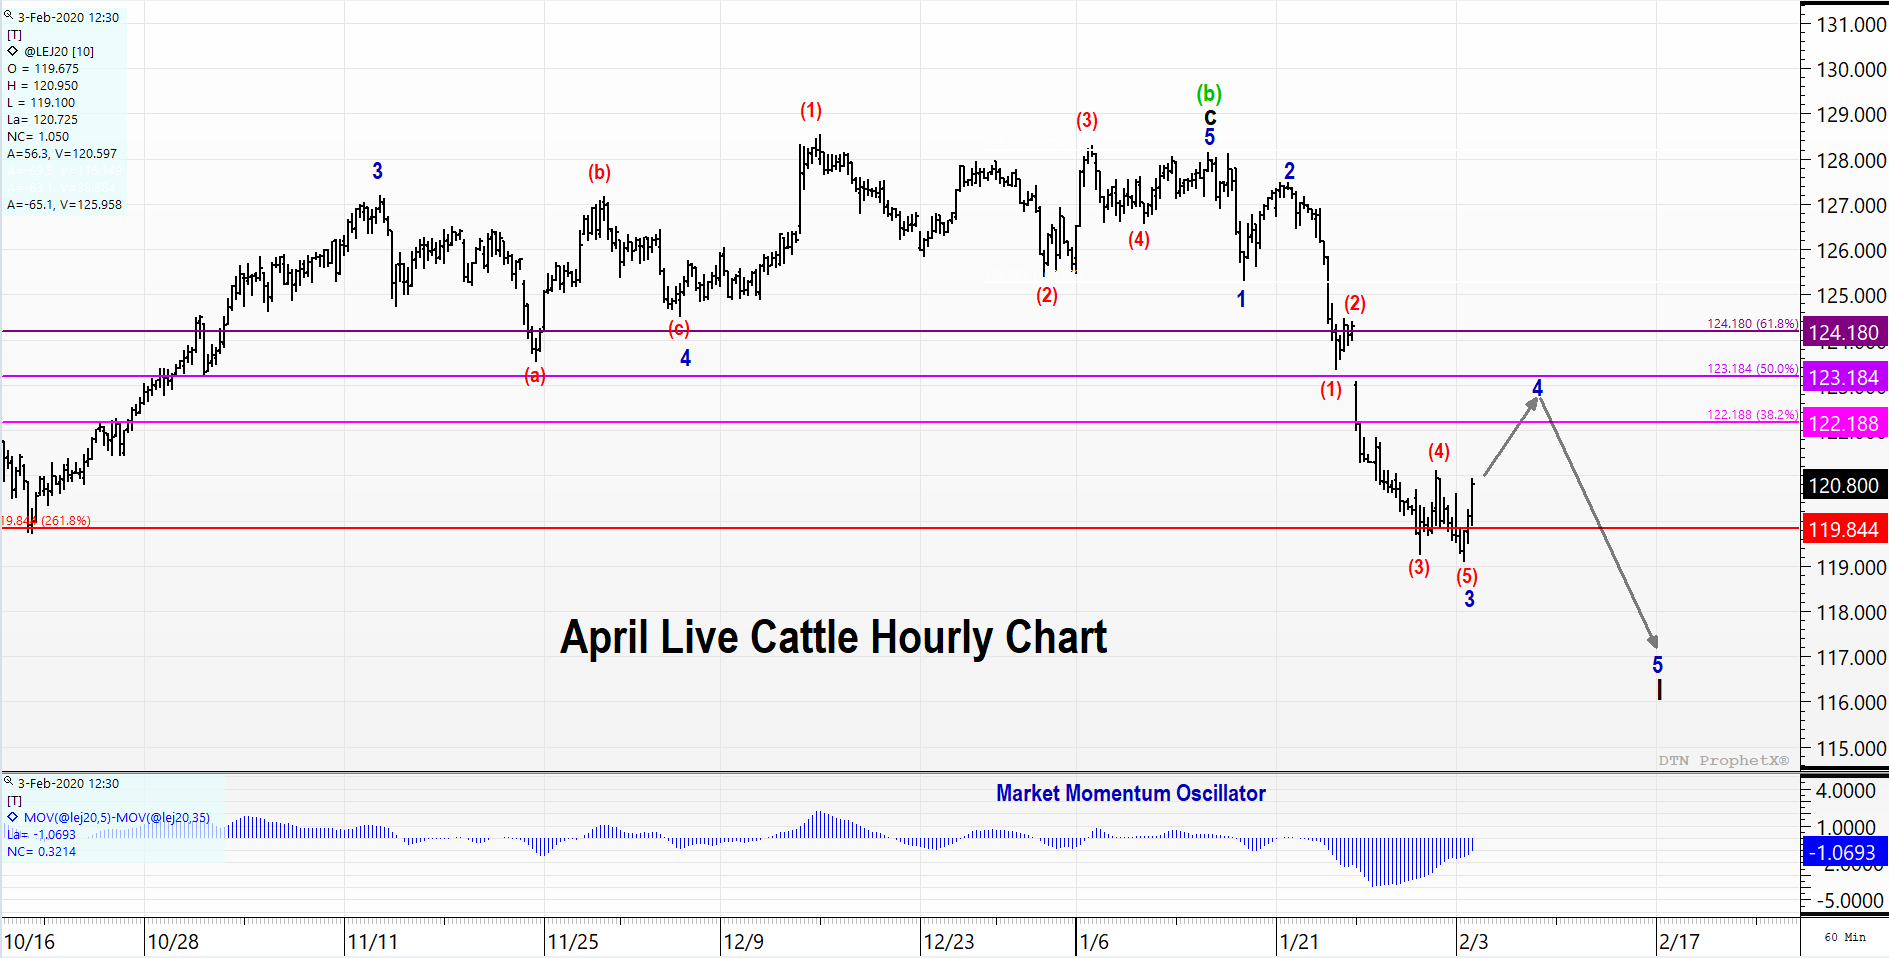 Live Cattle Futures Price Chart